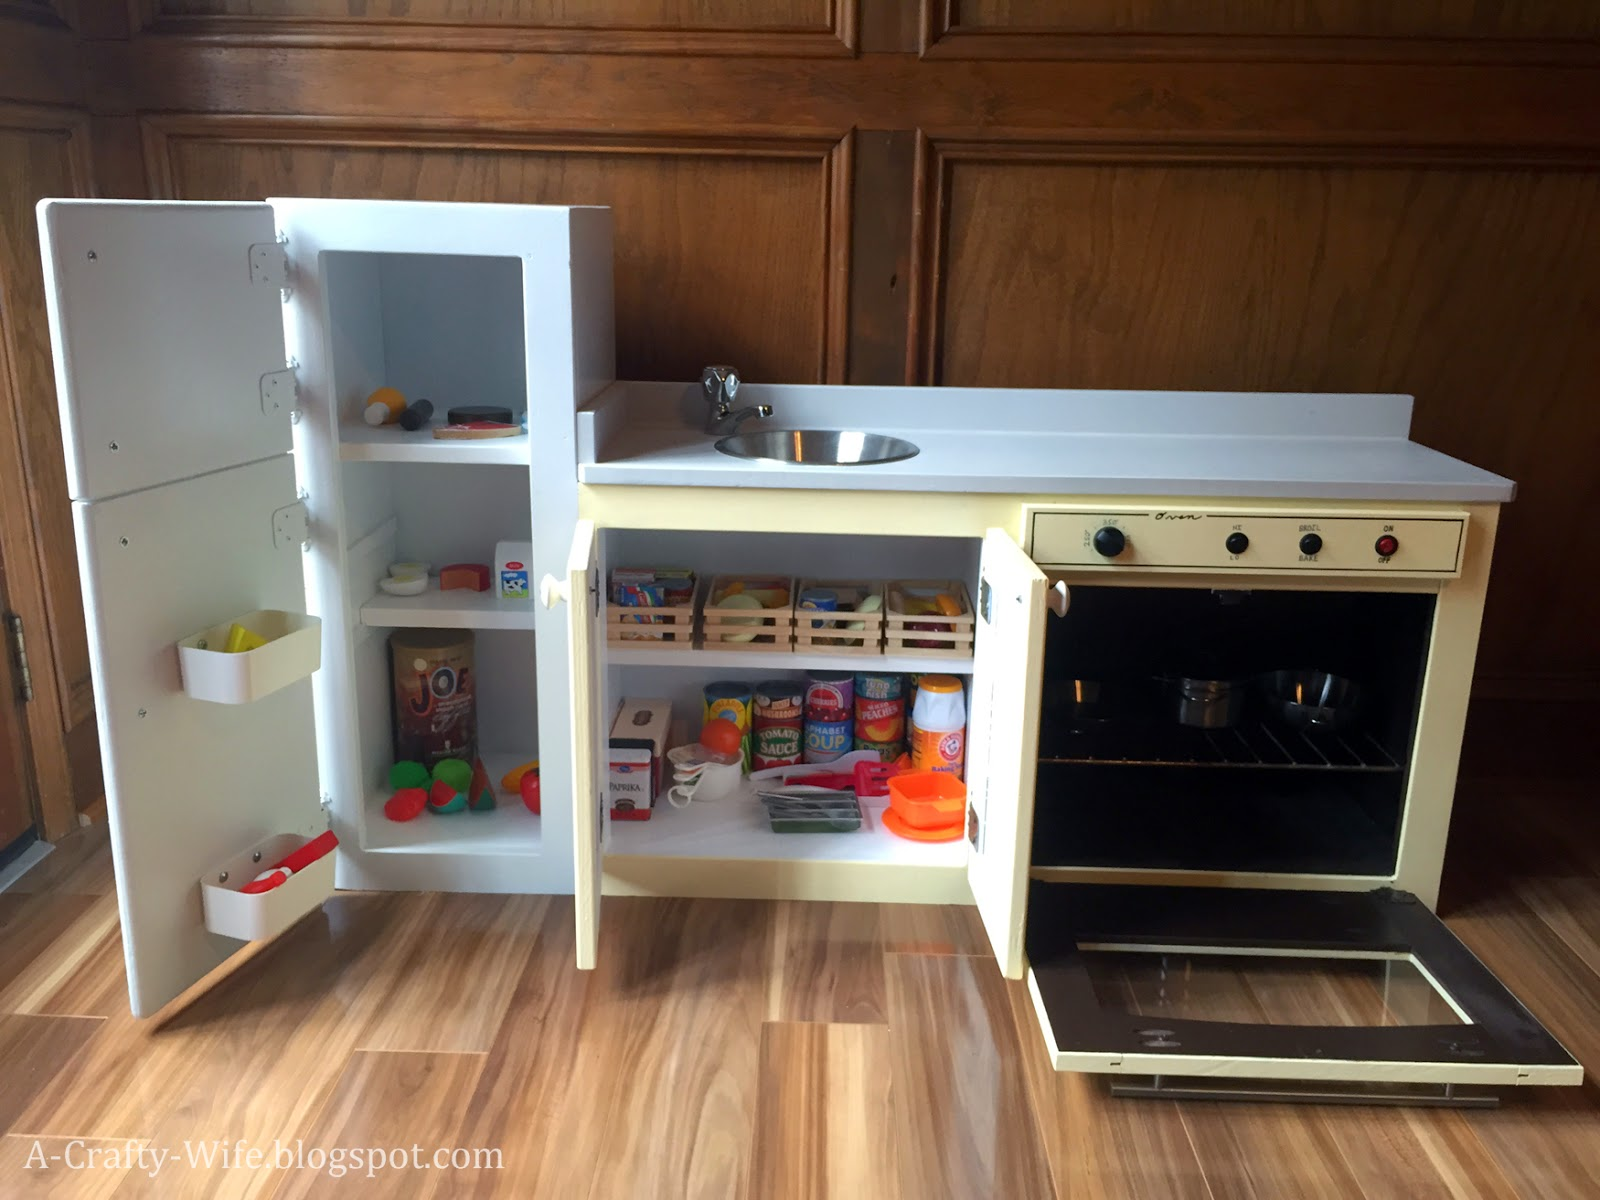 Cabinet turned into play kitchen stocked with play food from Melissa and Doug, Ikea, Toys R Us.